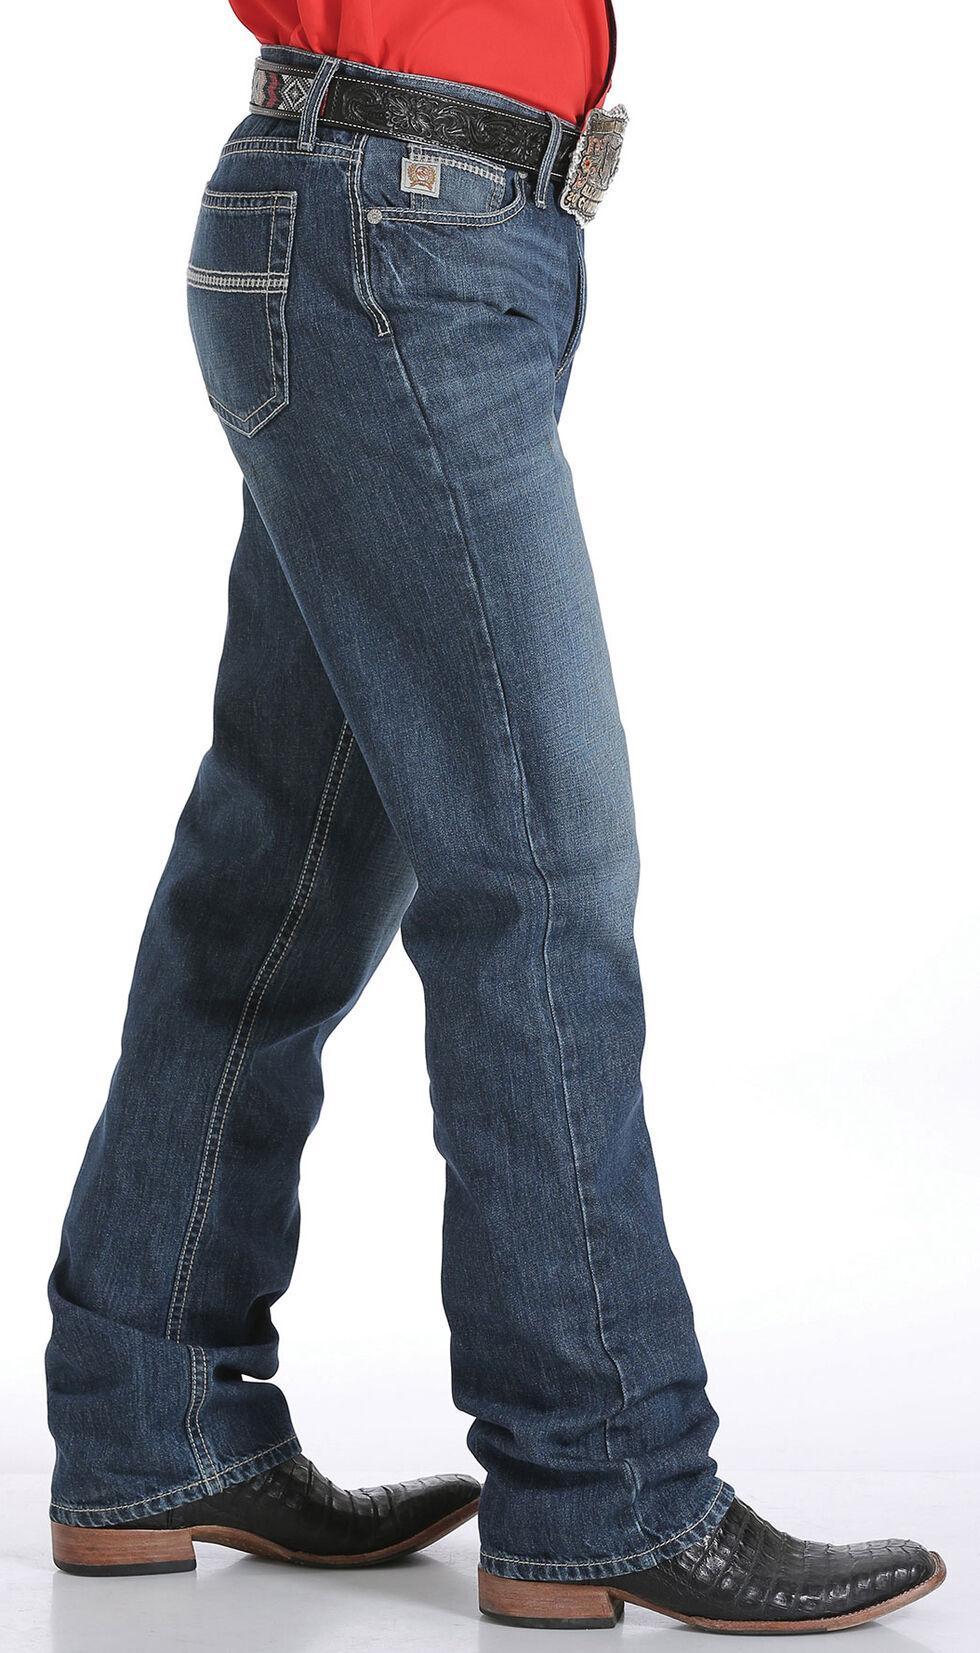 Cinch Men's Grant Mid-Rise Jeans - Boot Cut, Indigo, hi-res